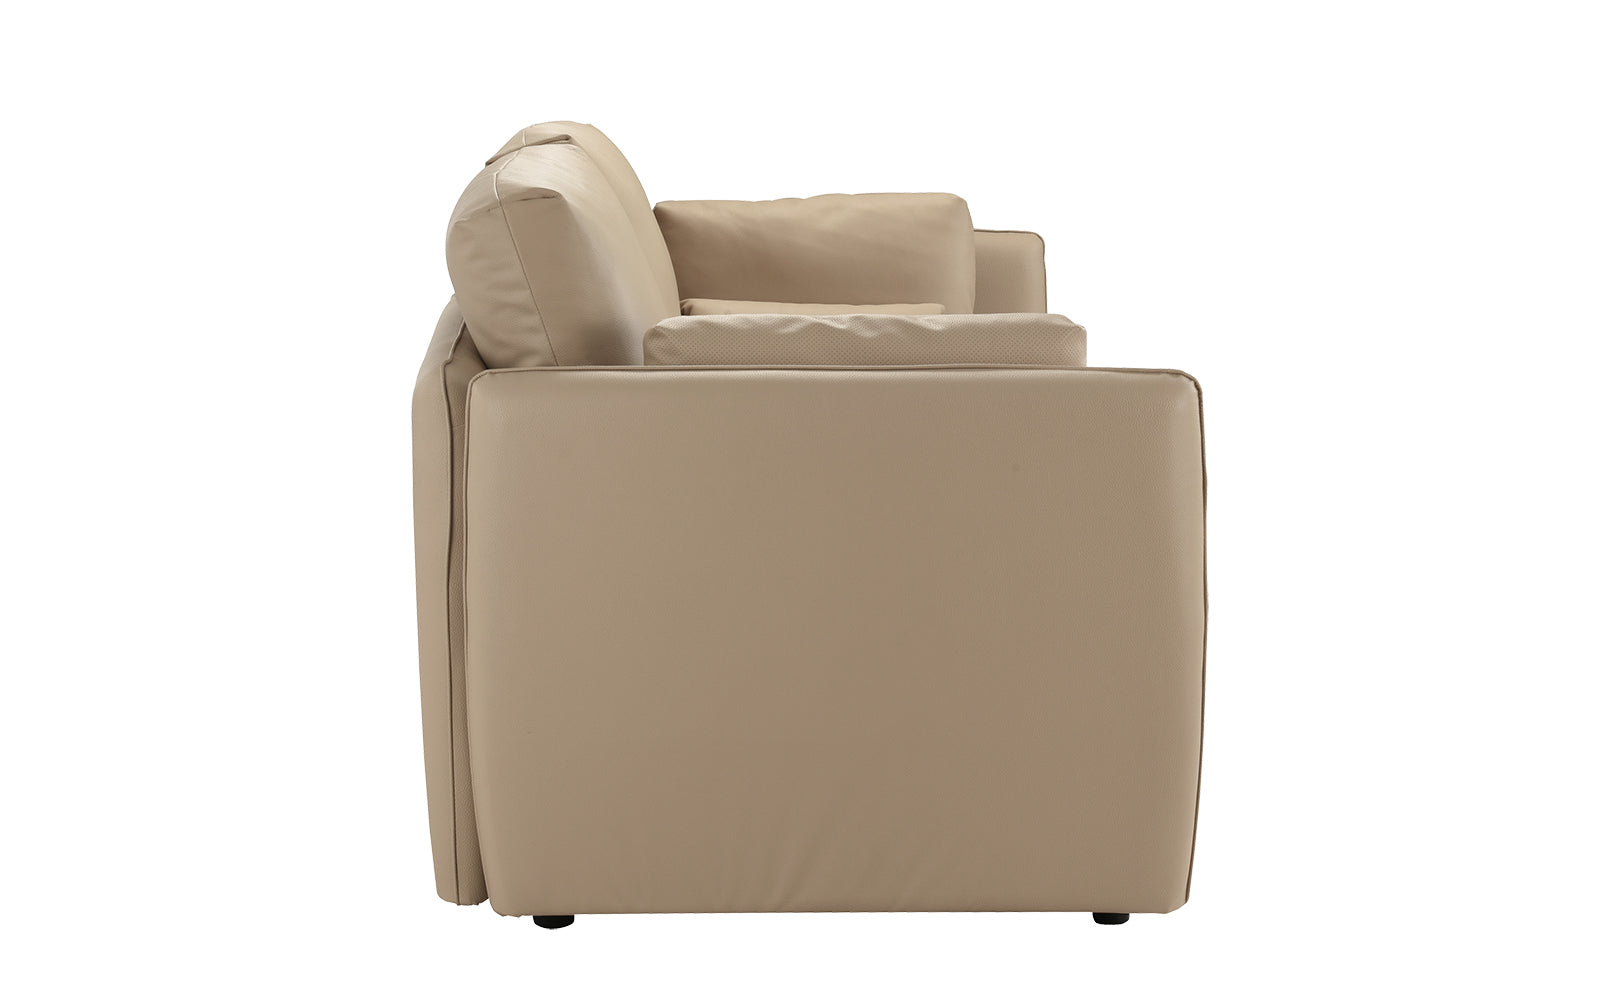 Wondrous Maxine Contemporary Faux Leather Loveseat Bralicious Painted Fabric Chair Ideas Braliciousco